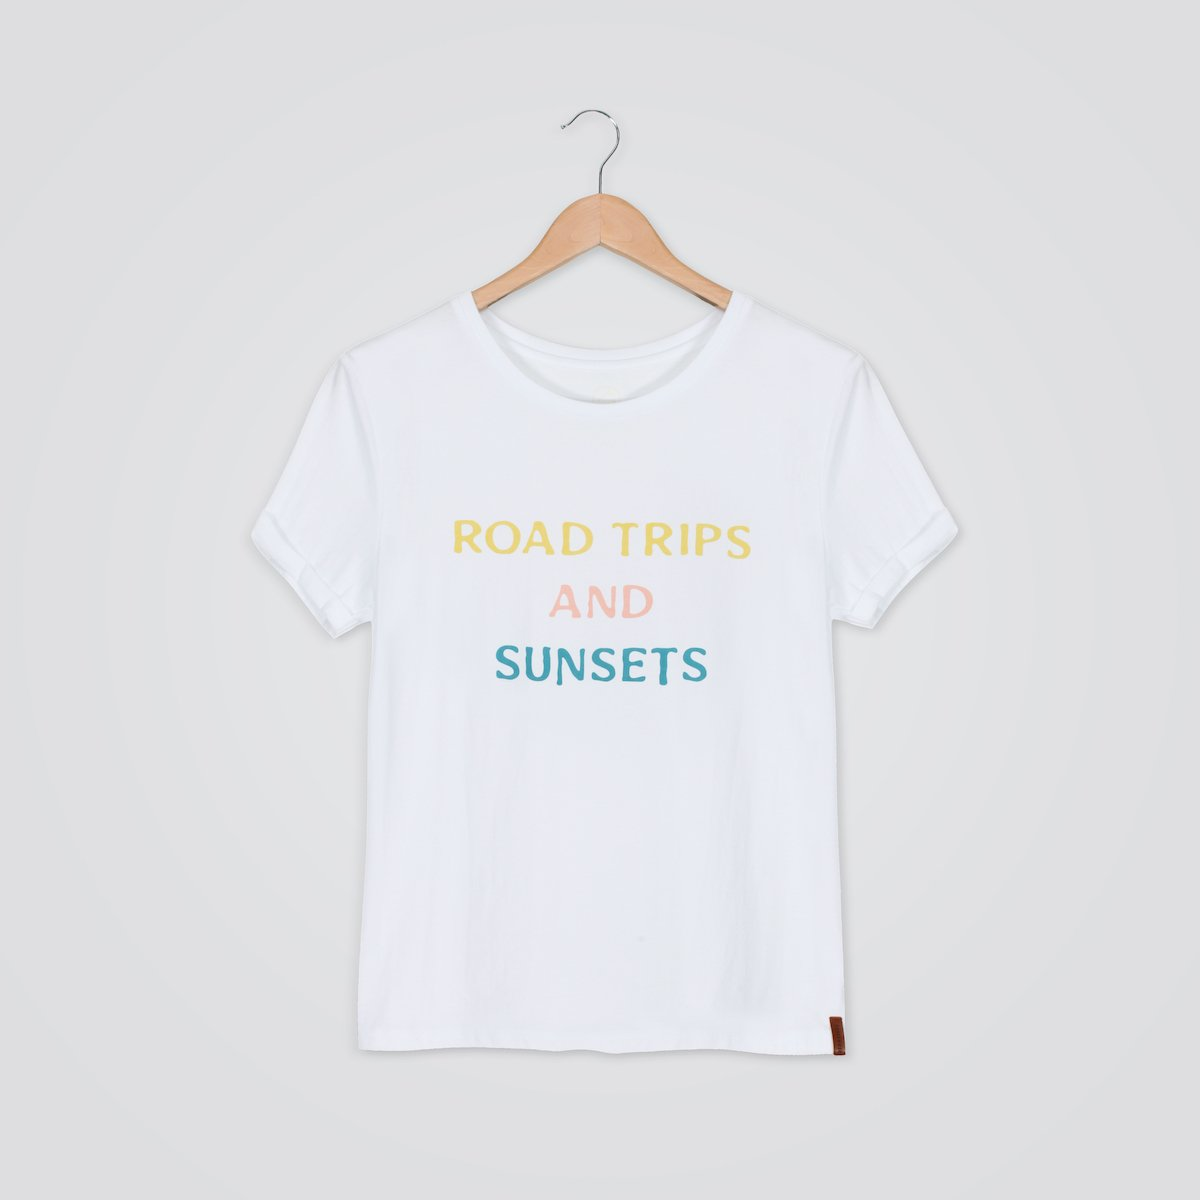 Perspective T-Shirt - White image 2